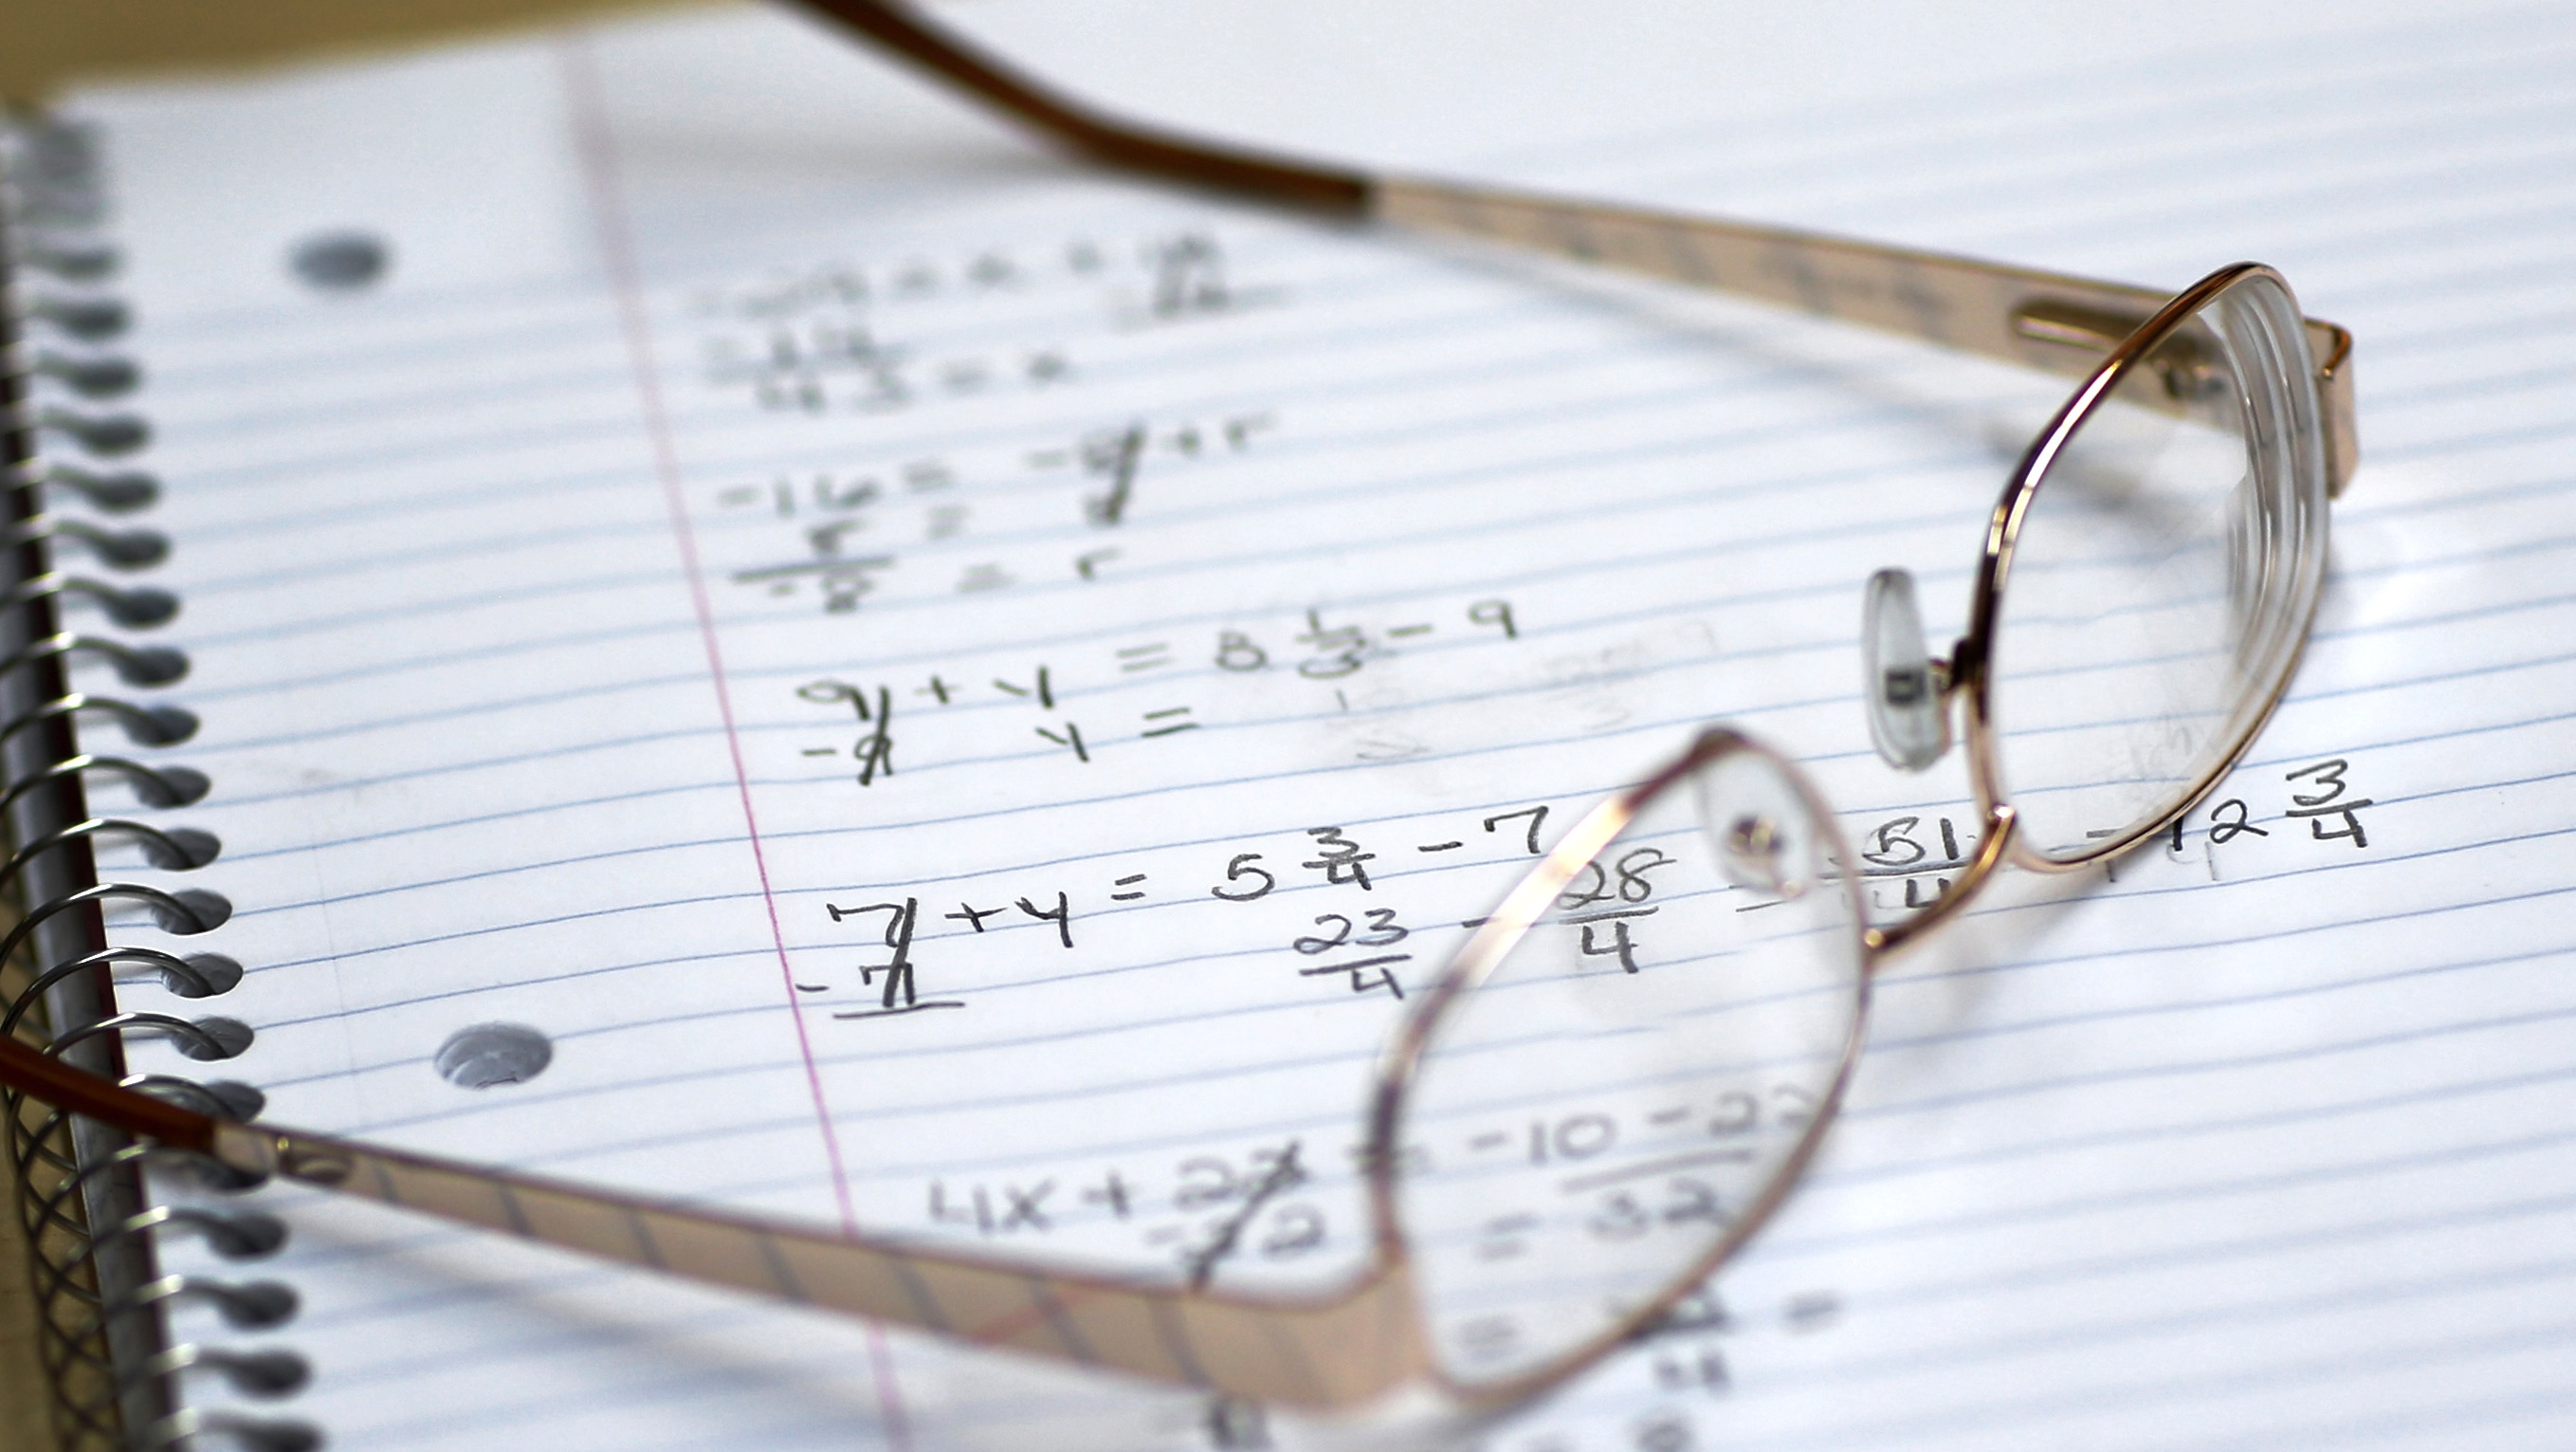 "This photo taken March 12, 2014, shows a student's glasses sitting on a notebook containing math exercises in a remedial mathematics course at Baltimore City Community College in Baltimore. Only about a quarter of students nationally who take developmental _ or remedial _ classes ever graduate. The problem is so profound that the advocacy group Complete College America dubs remedial classes the ""bridge to nowhere."" The challenge, educators say, is that even as billions is spent annually on remedial classes, many of these students run out of financial aid before they can complete their credit requirements, get discouraged by non-credit classes or find themselves unable to complete them. The Baltimore school is one of several places around the country looking to improve the odds for these students. (AP Photo/Patrick Semansky)"